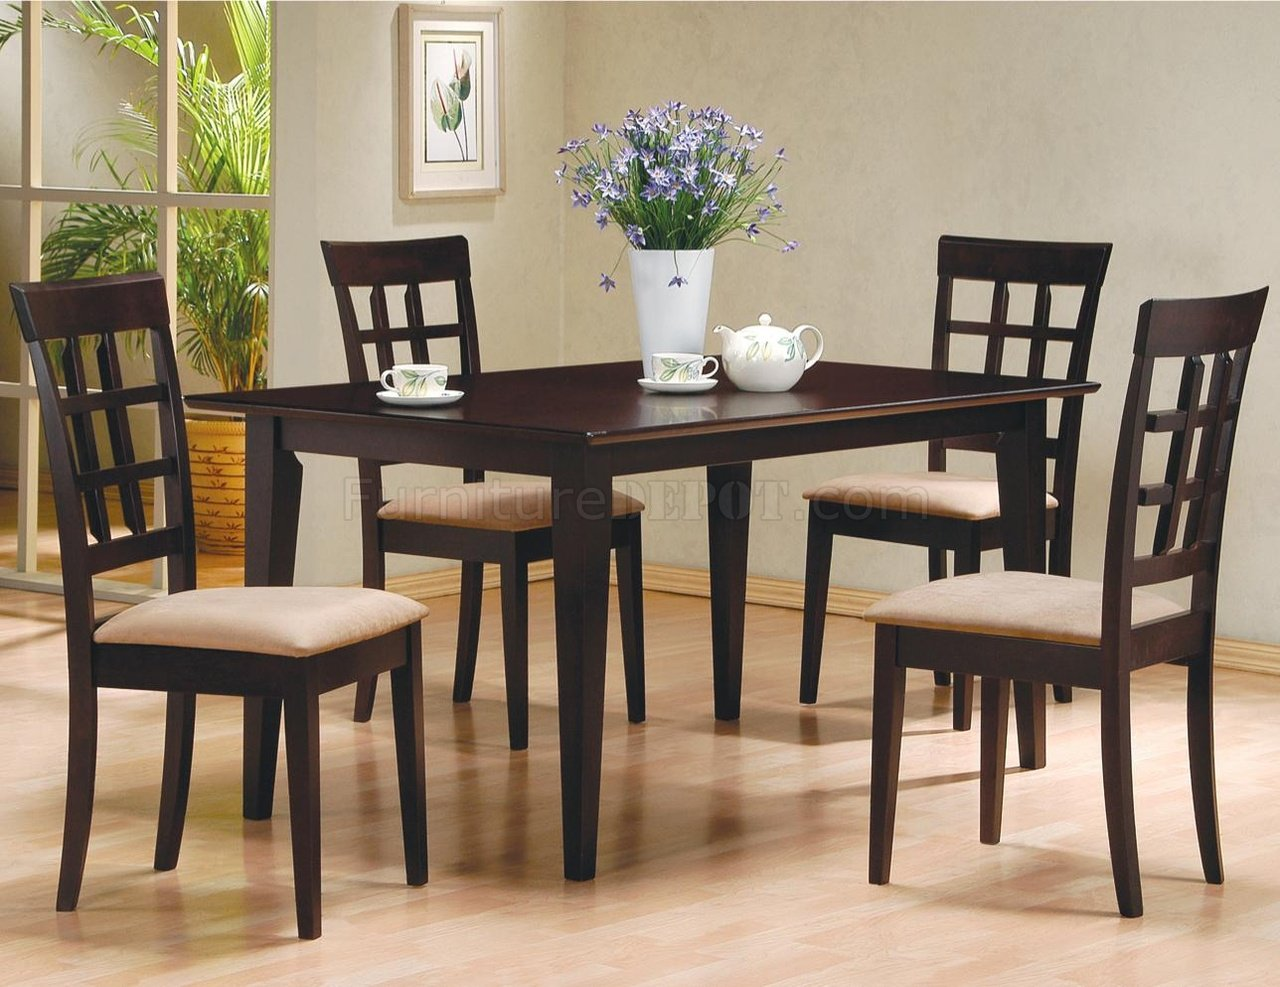 Cappuccino Finish 5Pc Modern Dinette Set wMicrofiber Seats : 55890d3689ecf18a766408c81210063fimage1280x987 from www.furnituredepot.com size 1280 x 987 jpeg 200kB